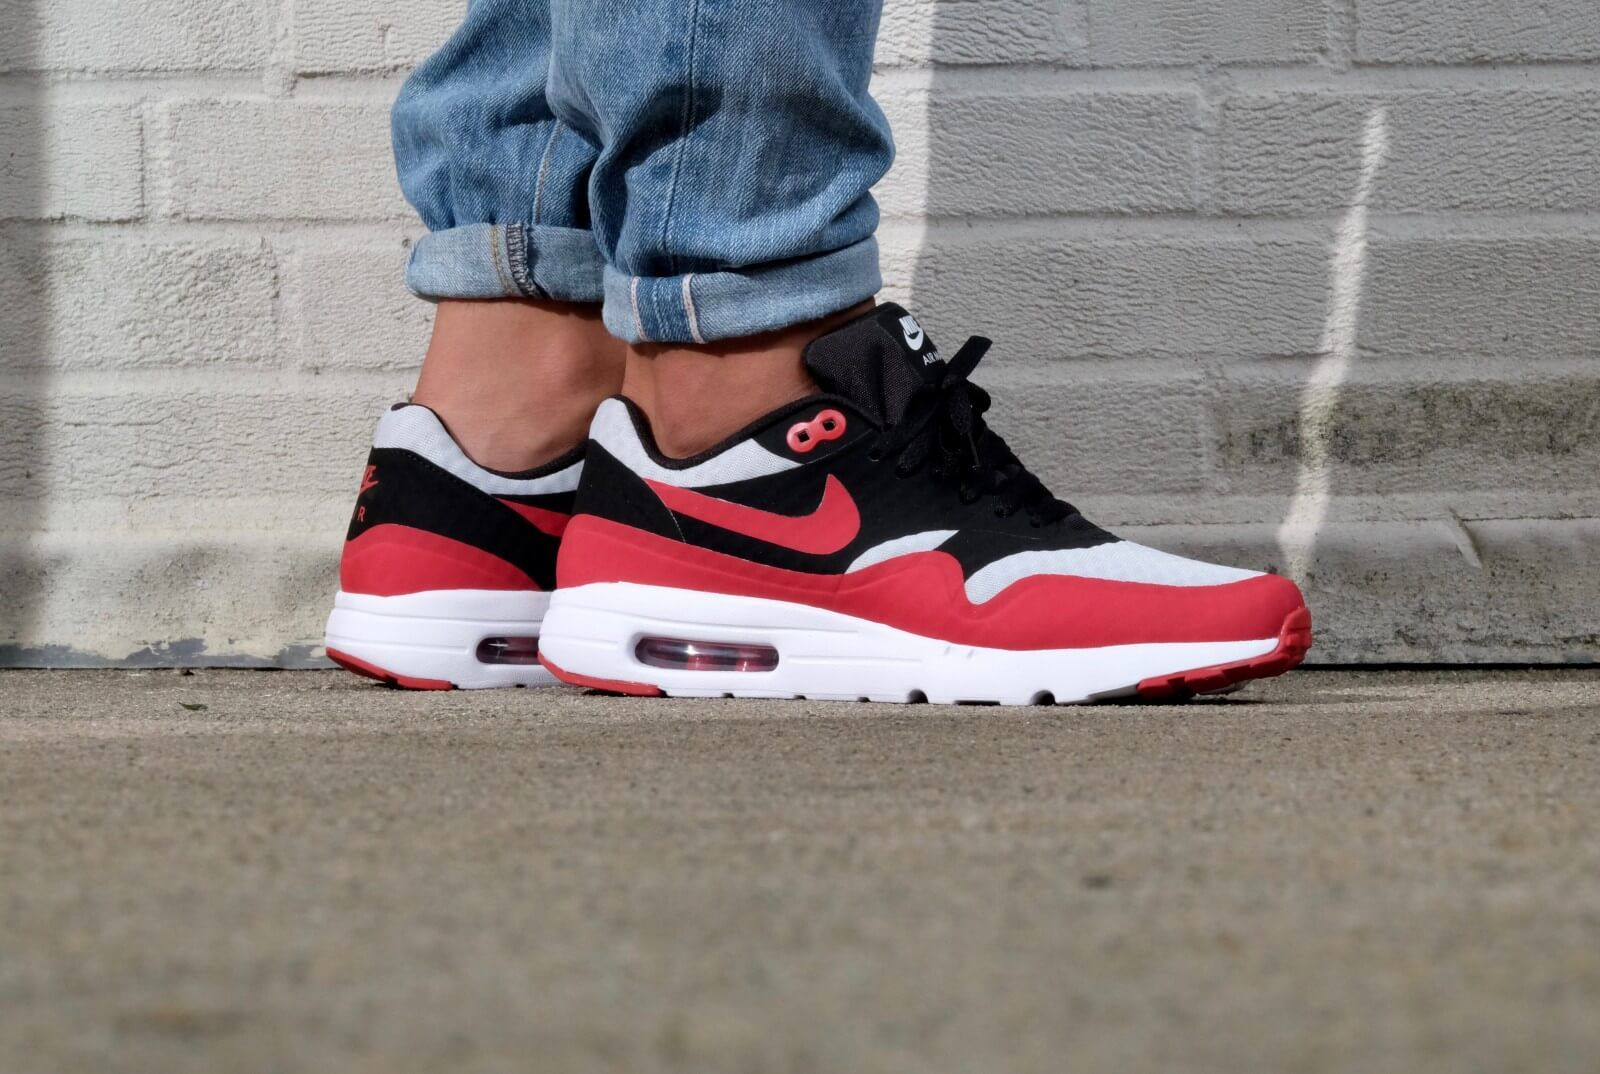 Nike air max bw premium black crimson midnight navy white